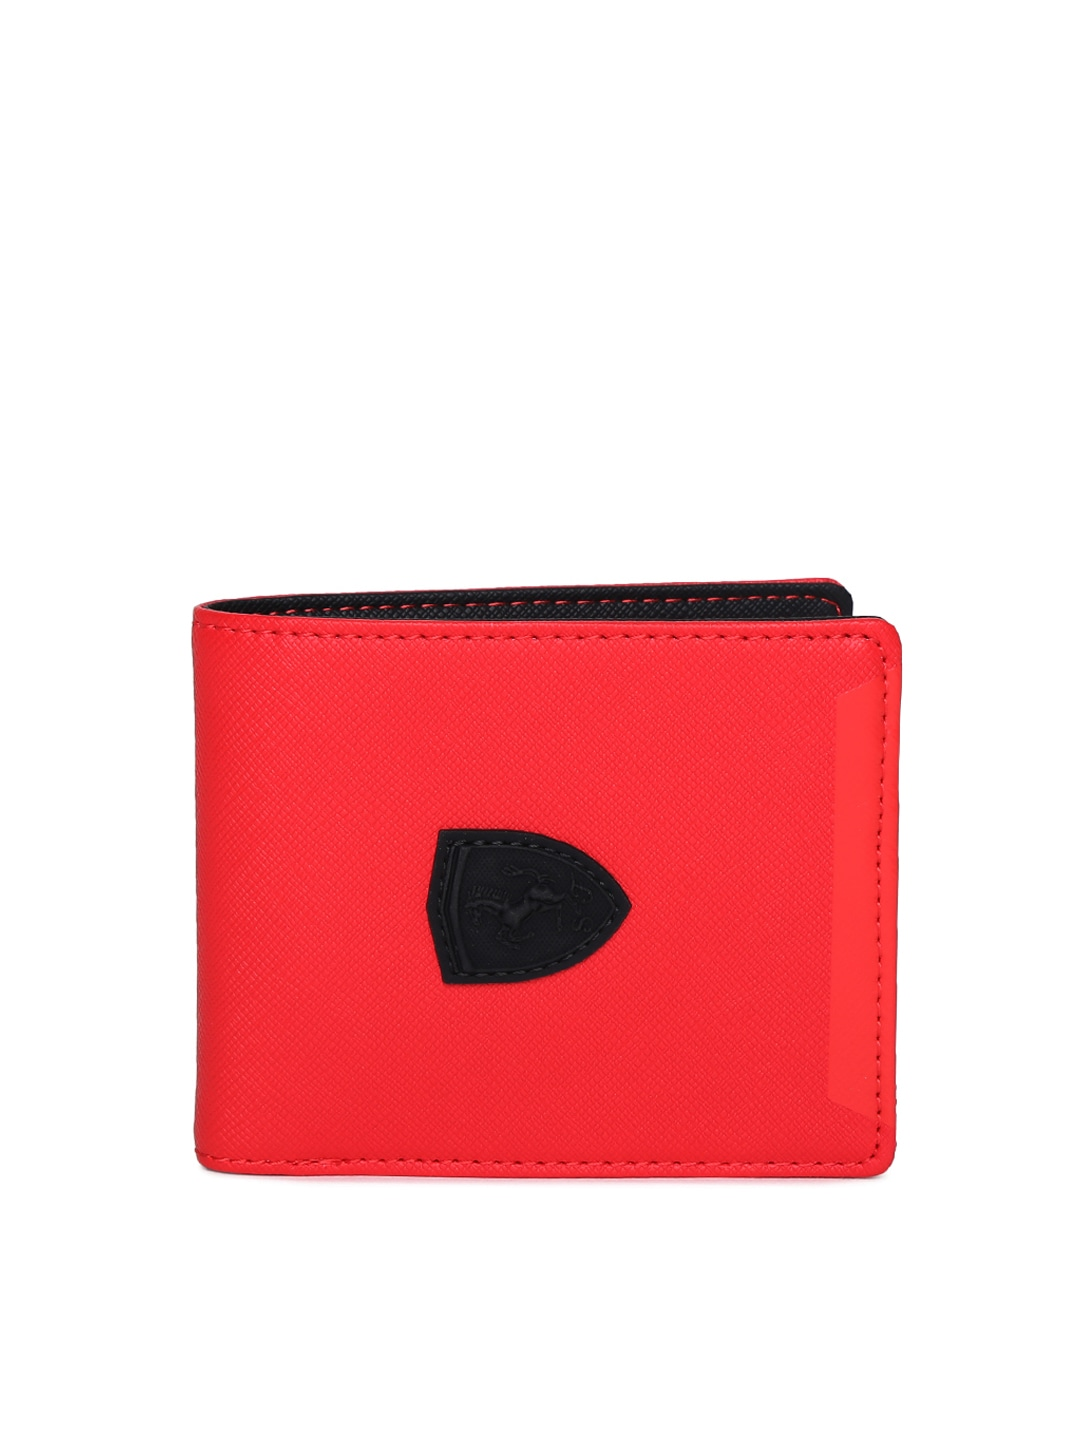 0901525525 Puma Watches Wallets - Buy Puma Watches Wallets online in India